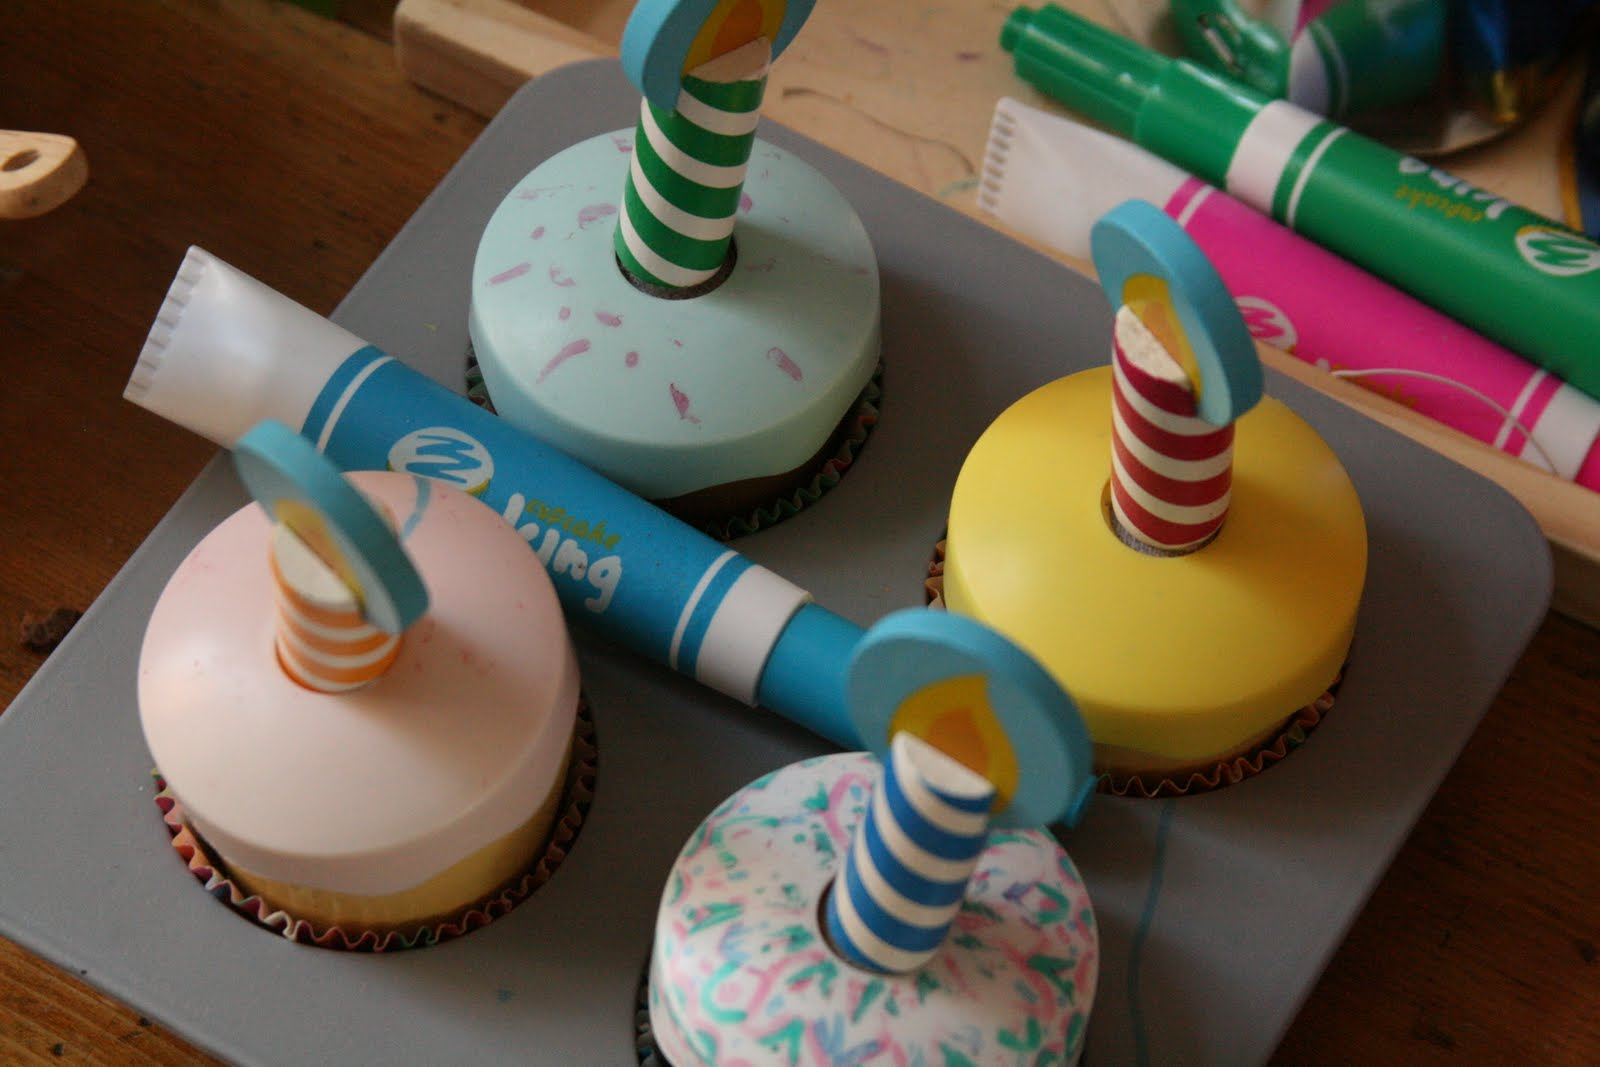 We Have Lots Of Kitchen Toys And Real Implements For Imaginative Cake Mixing Baking Decorating Whisks Spatulas Cup Cases Candles Bring A